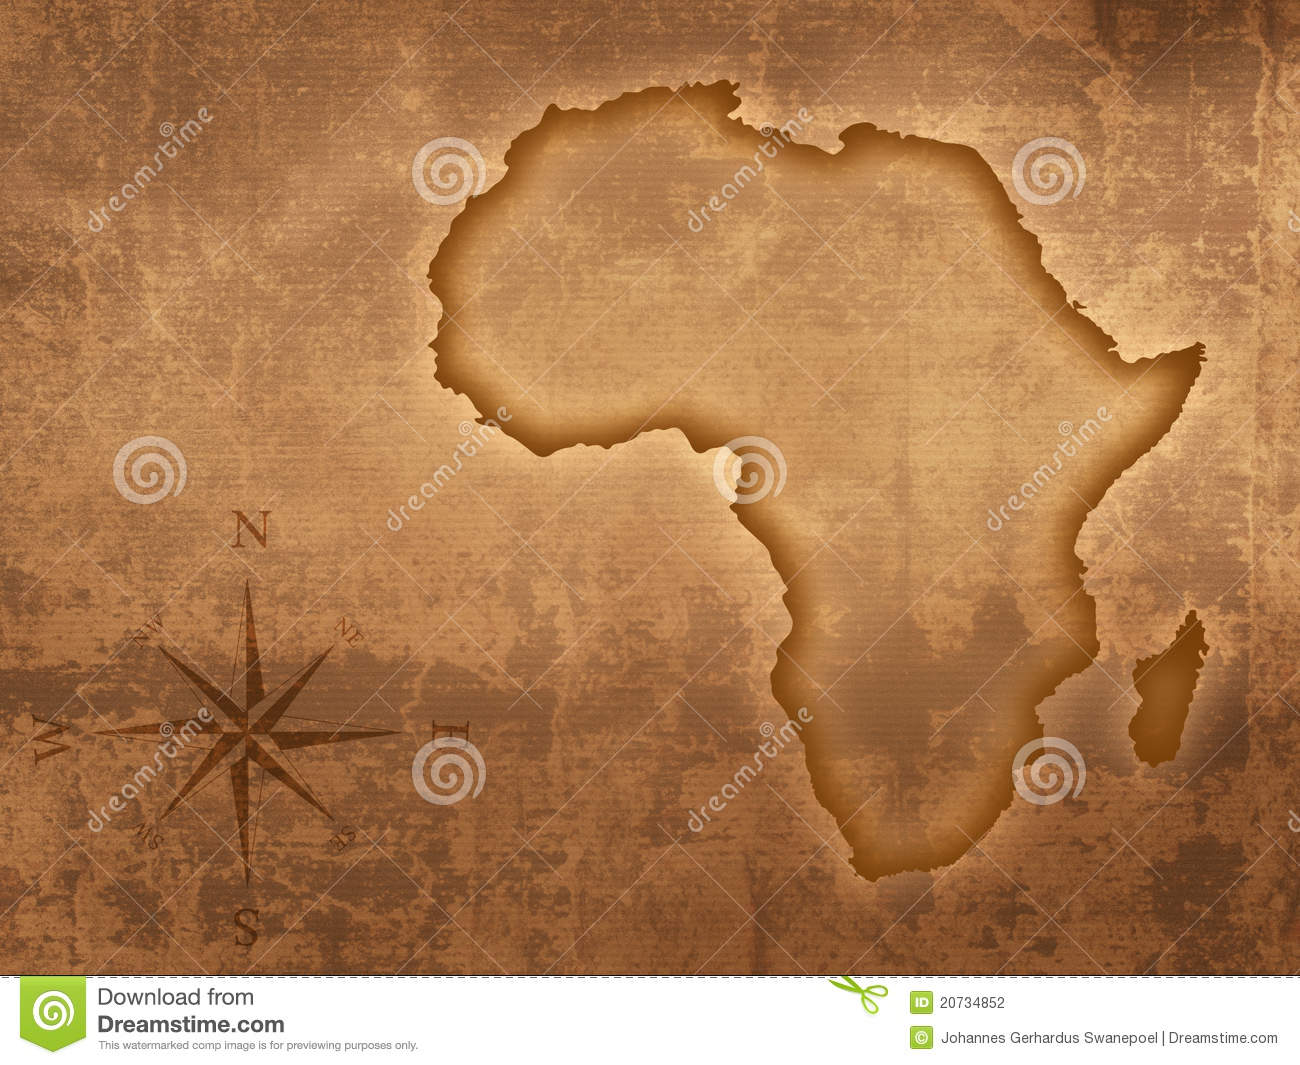 old style africa map